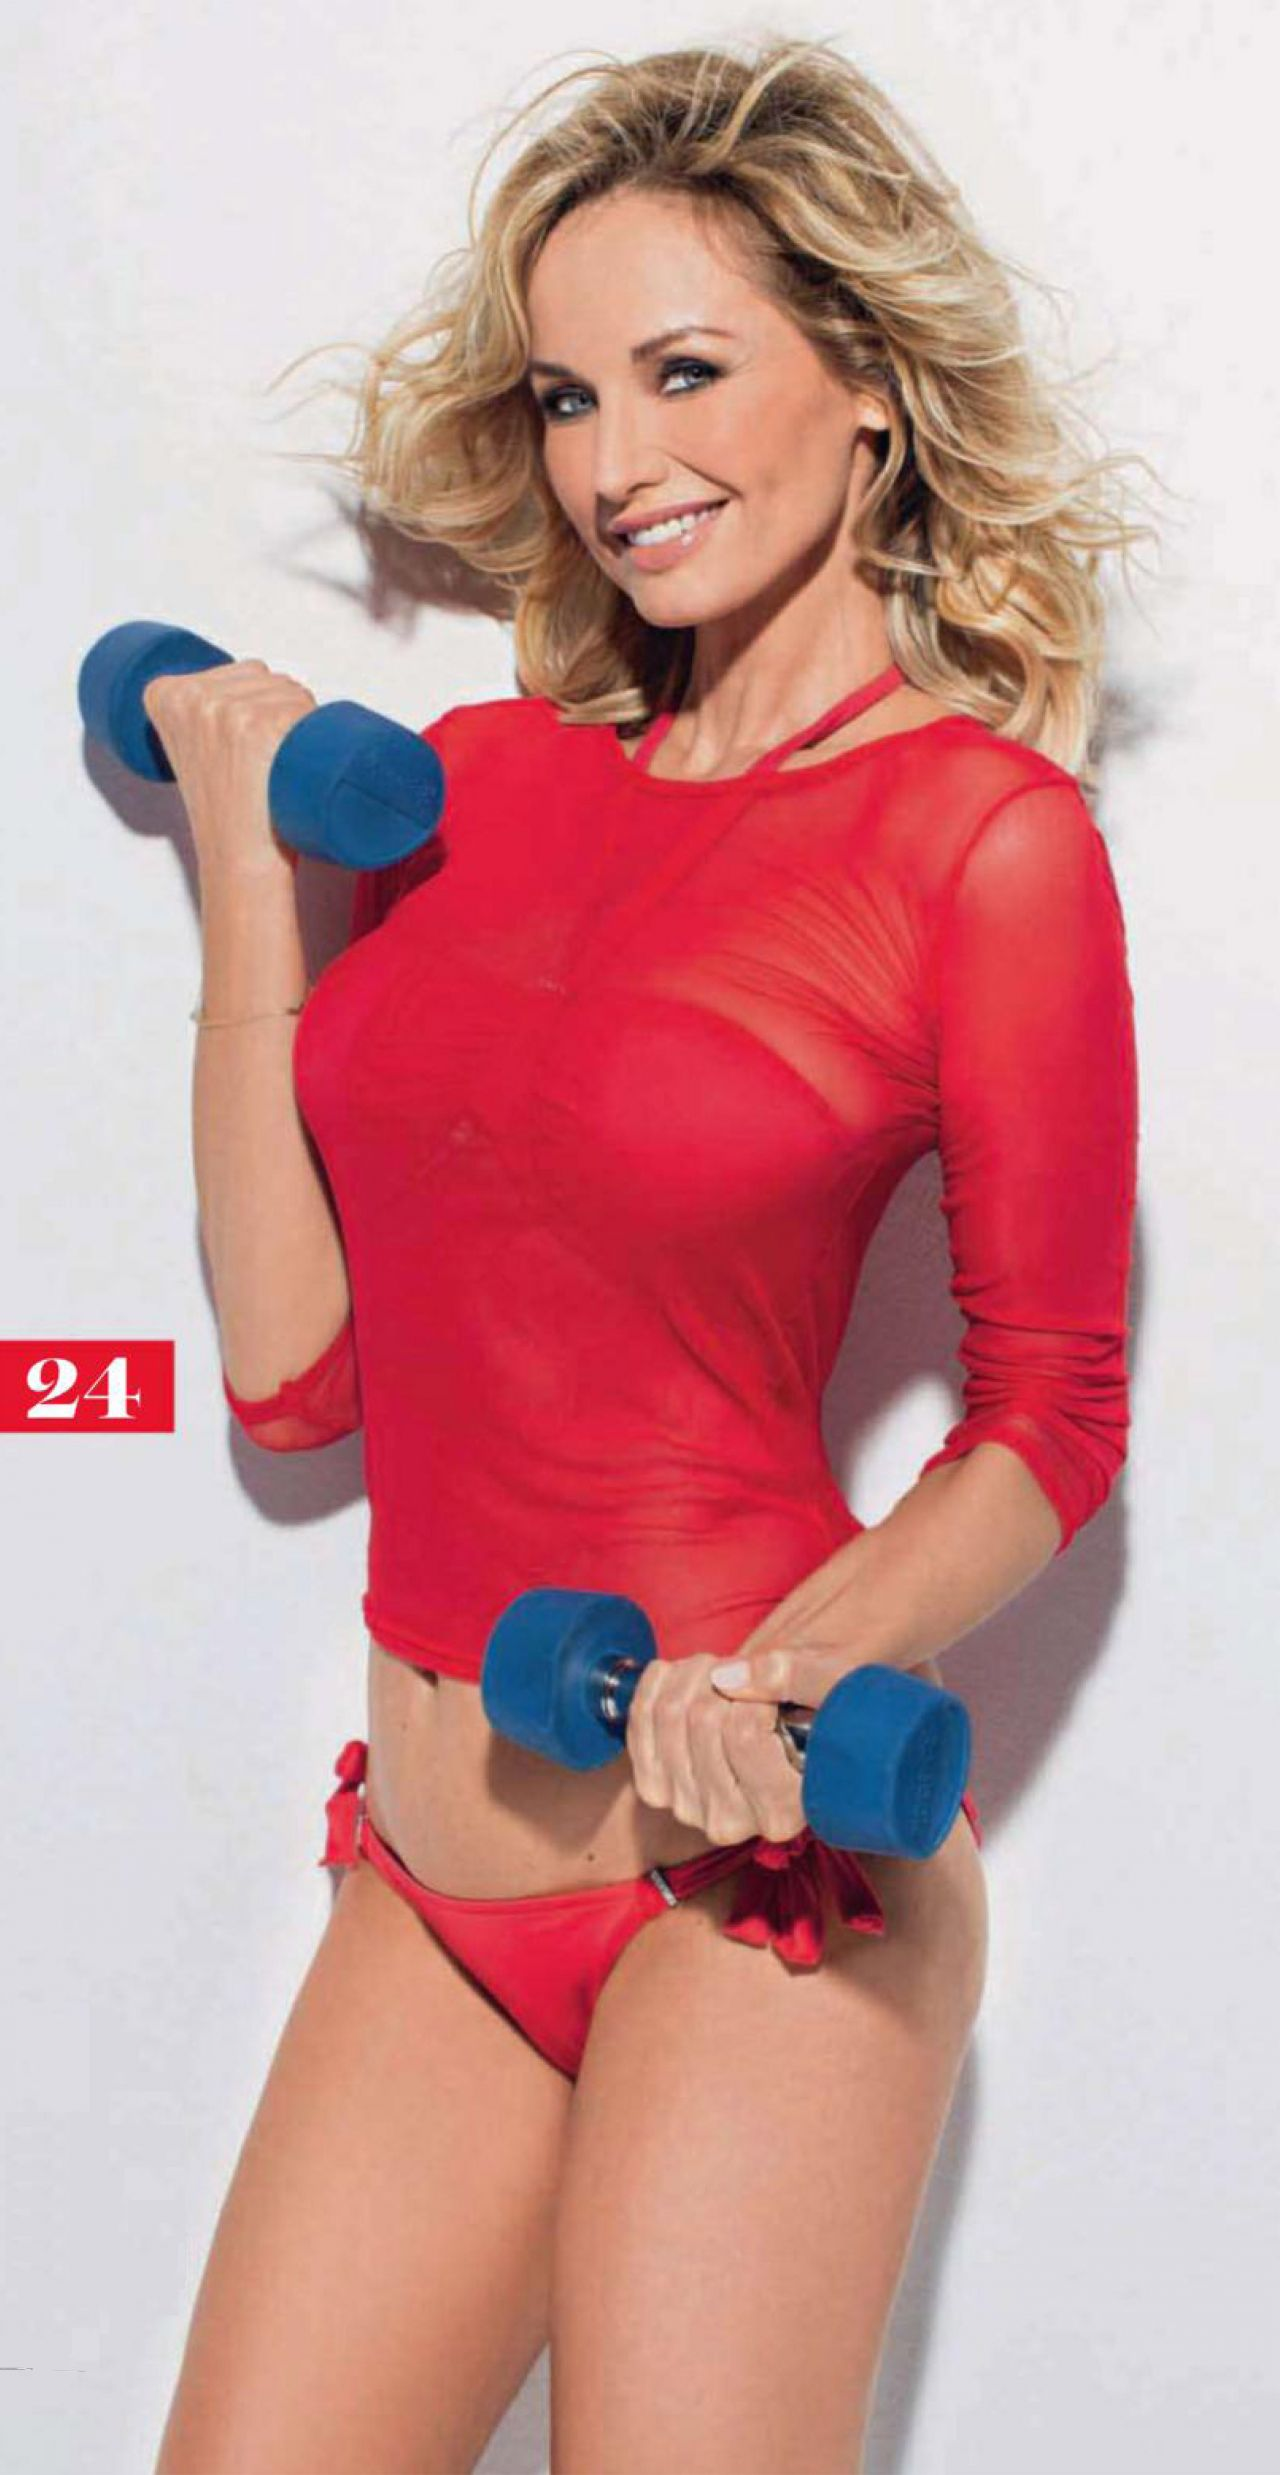 Adriana Karembeu in SHAPE Magazine (FR), October 2013 Issue